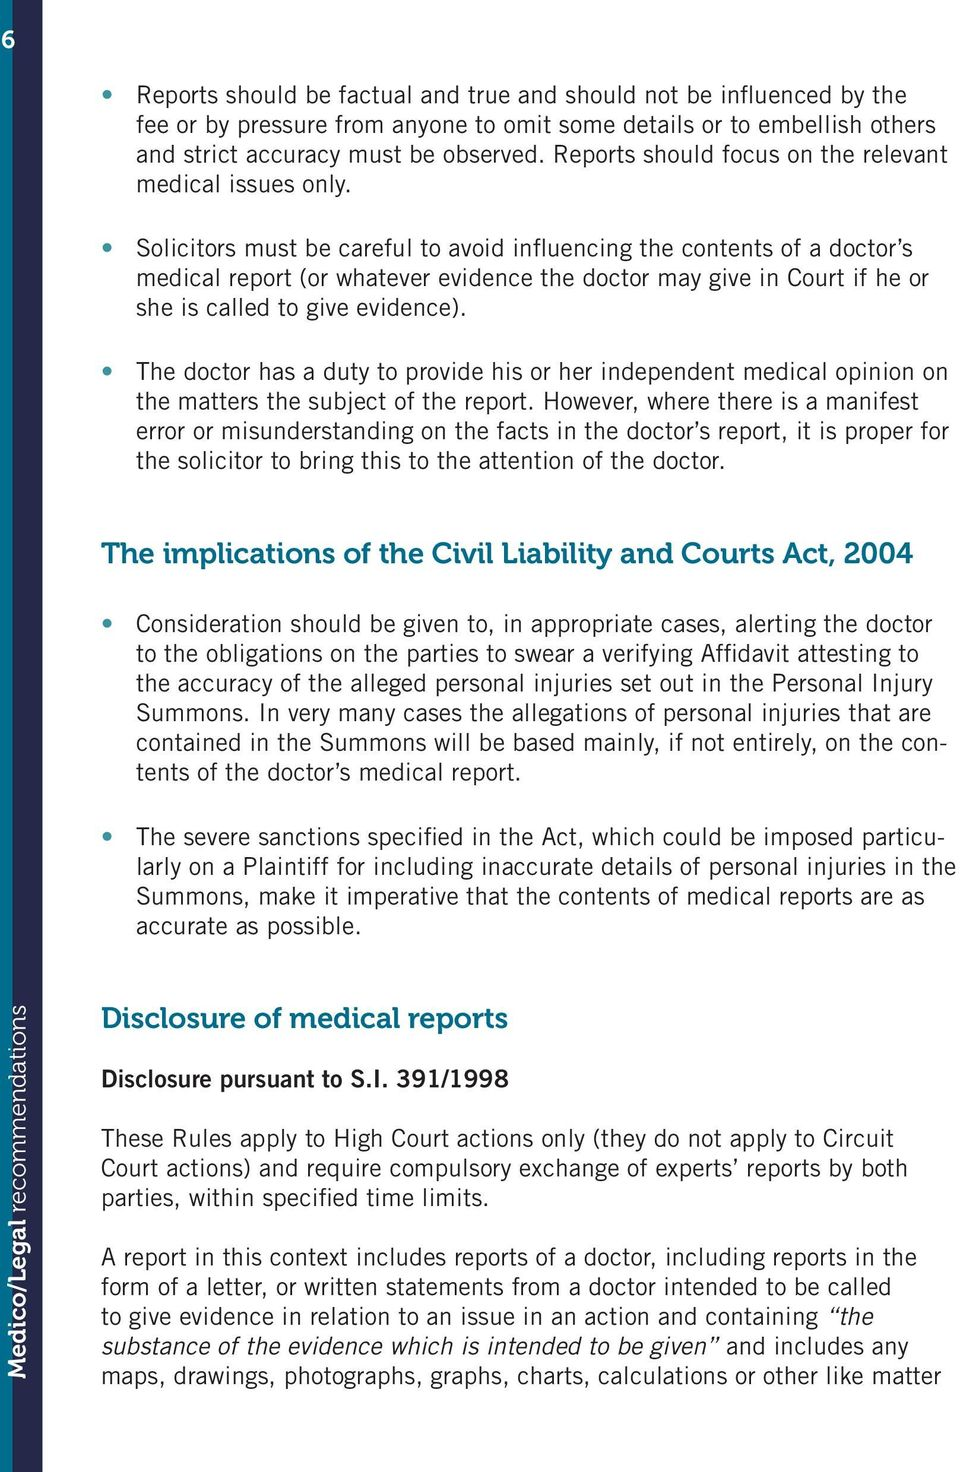 Solicitors must be careful to avoid influencing the contents of a doctor s medical report (or whatever evidence the doctor may give in Court if he or she is called to give evidence).